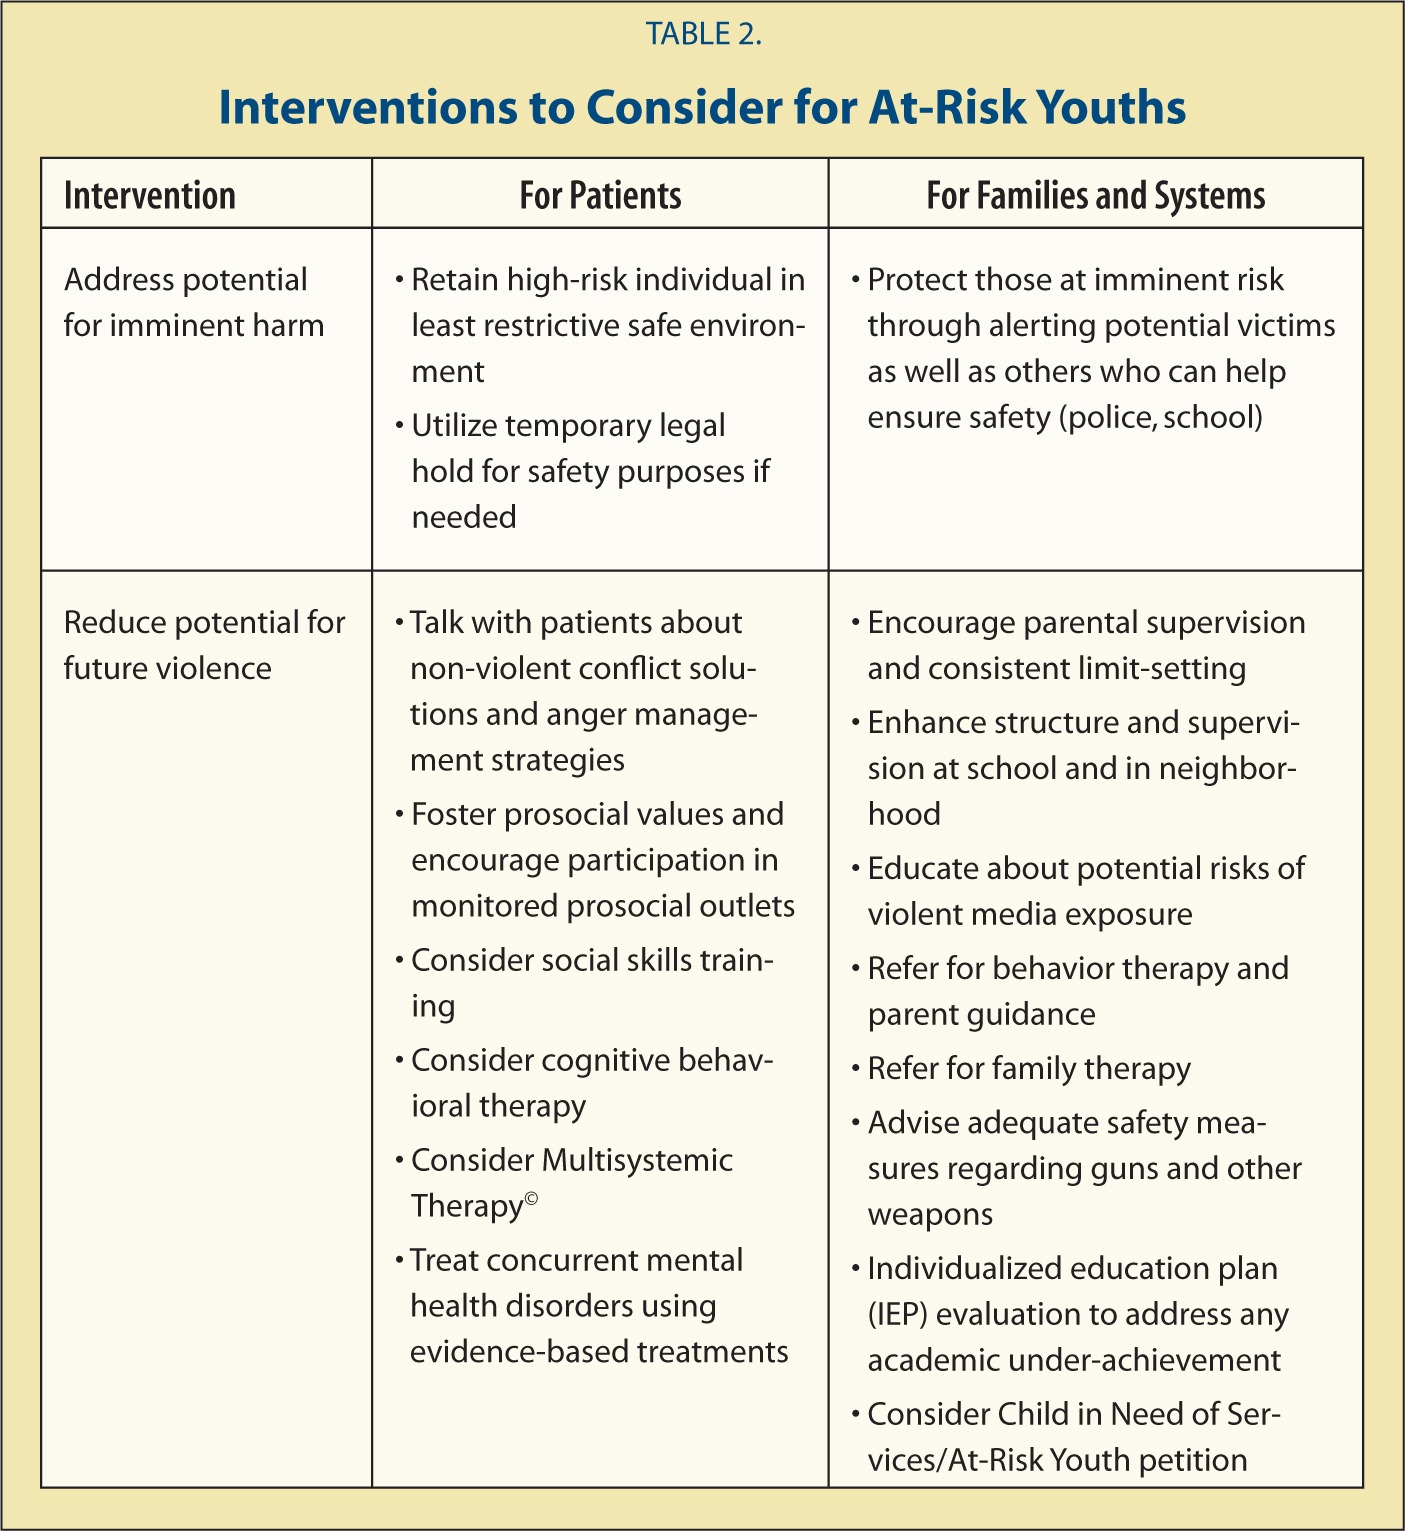 Interventions to Consider for At-Risk Youths